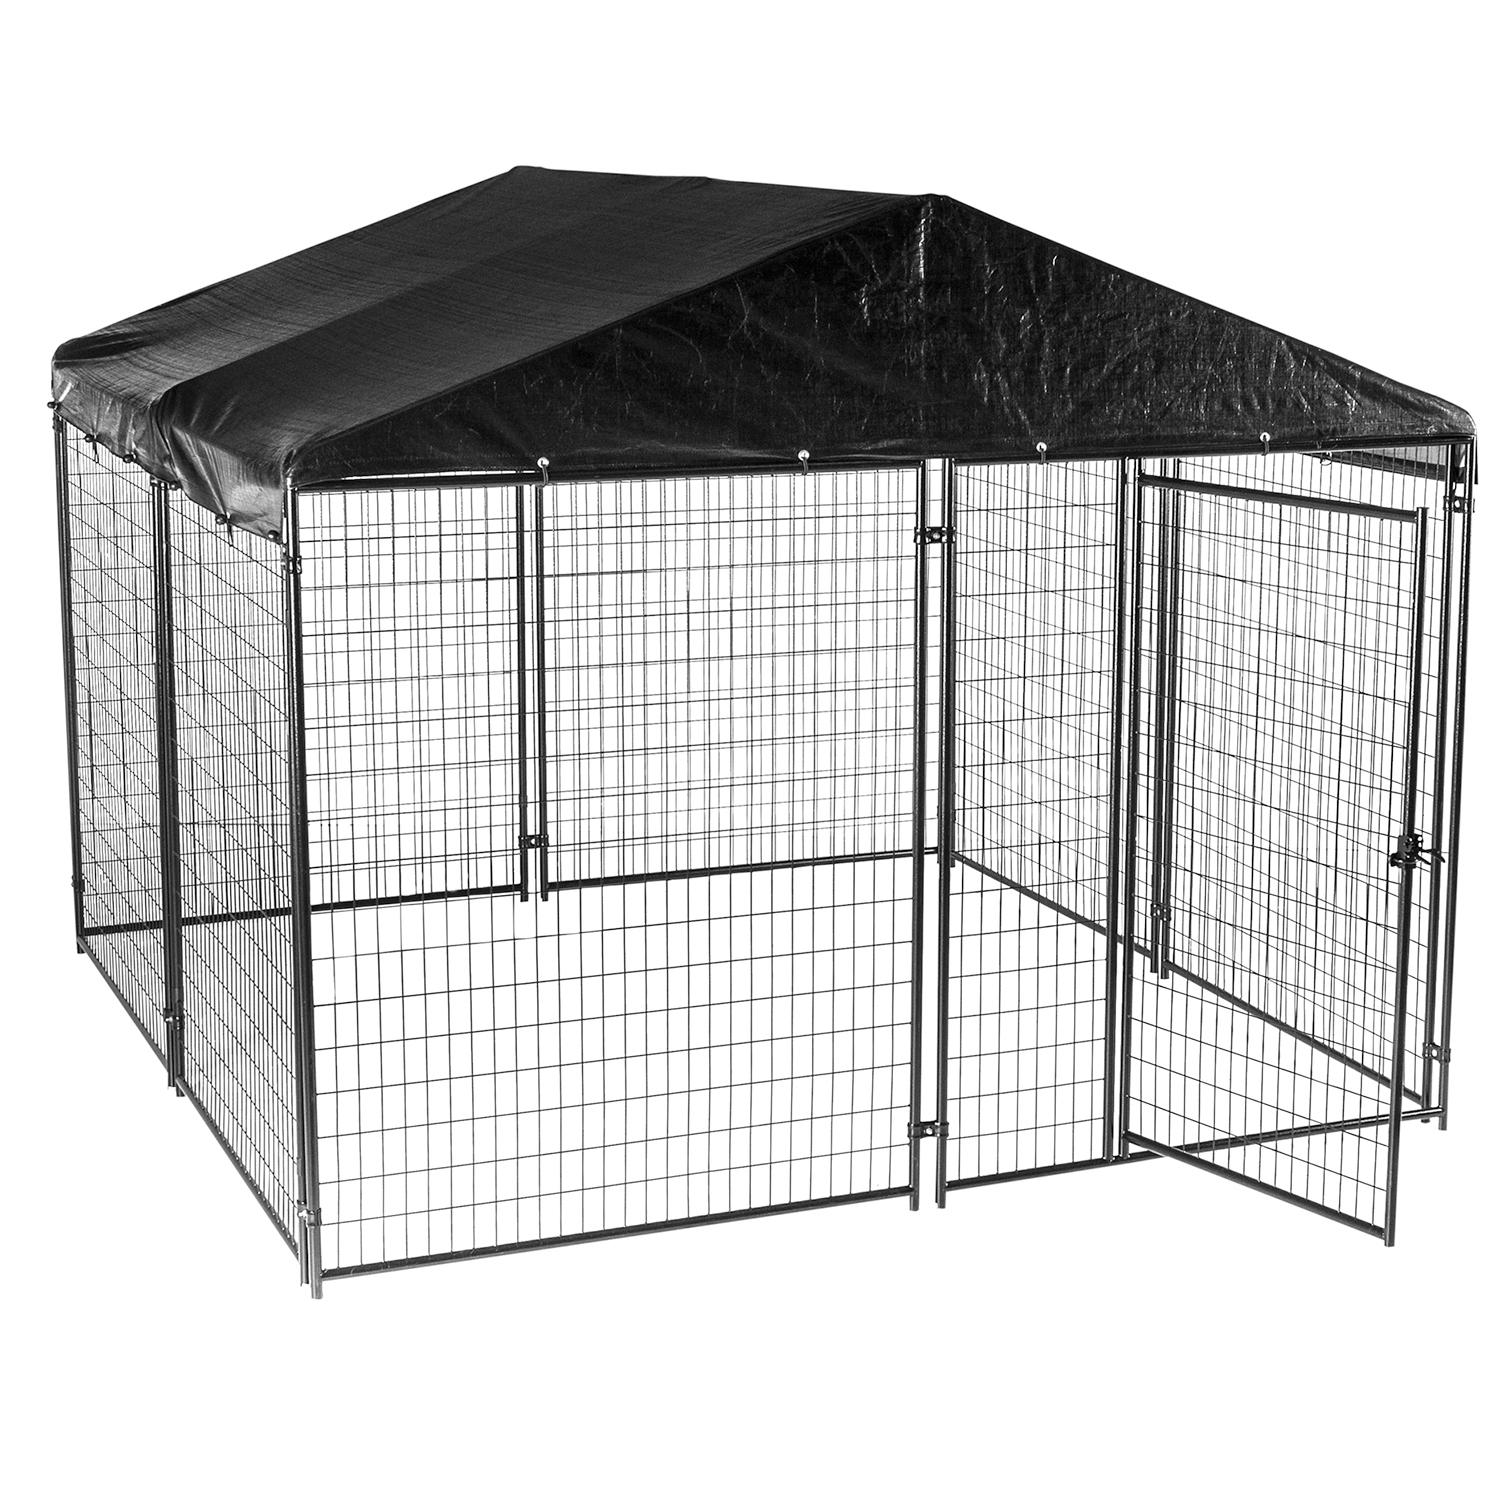 Lucky Dog Black Modular Kennel with Waterproof Cover